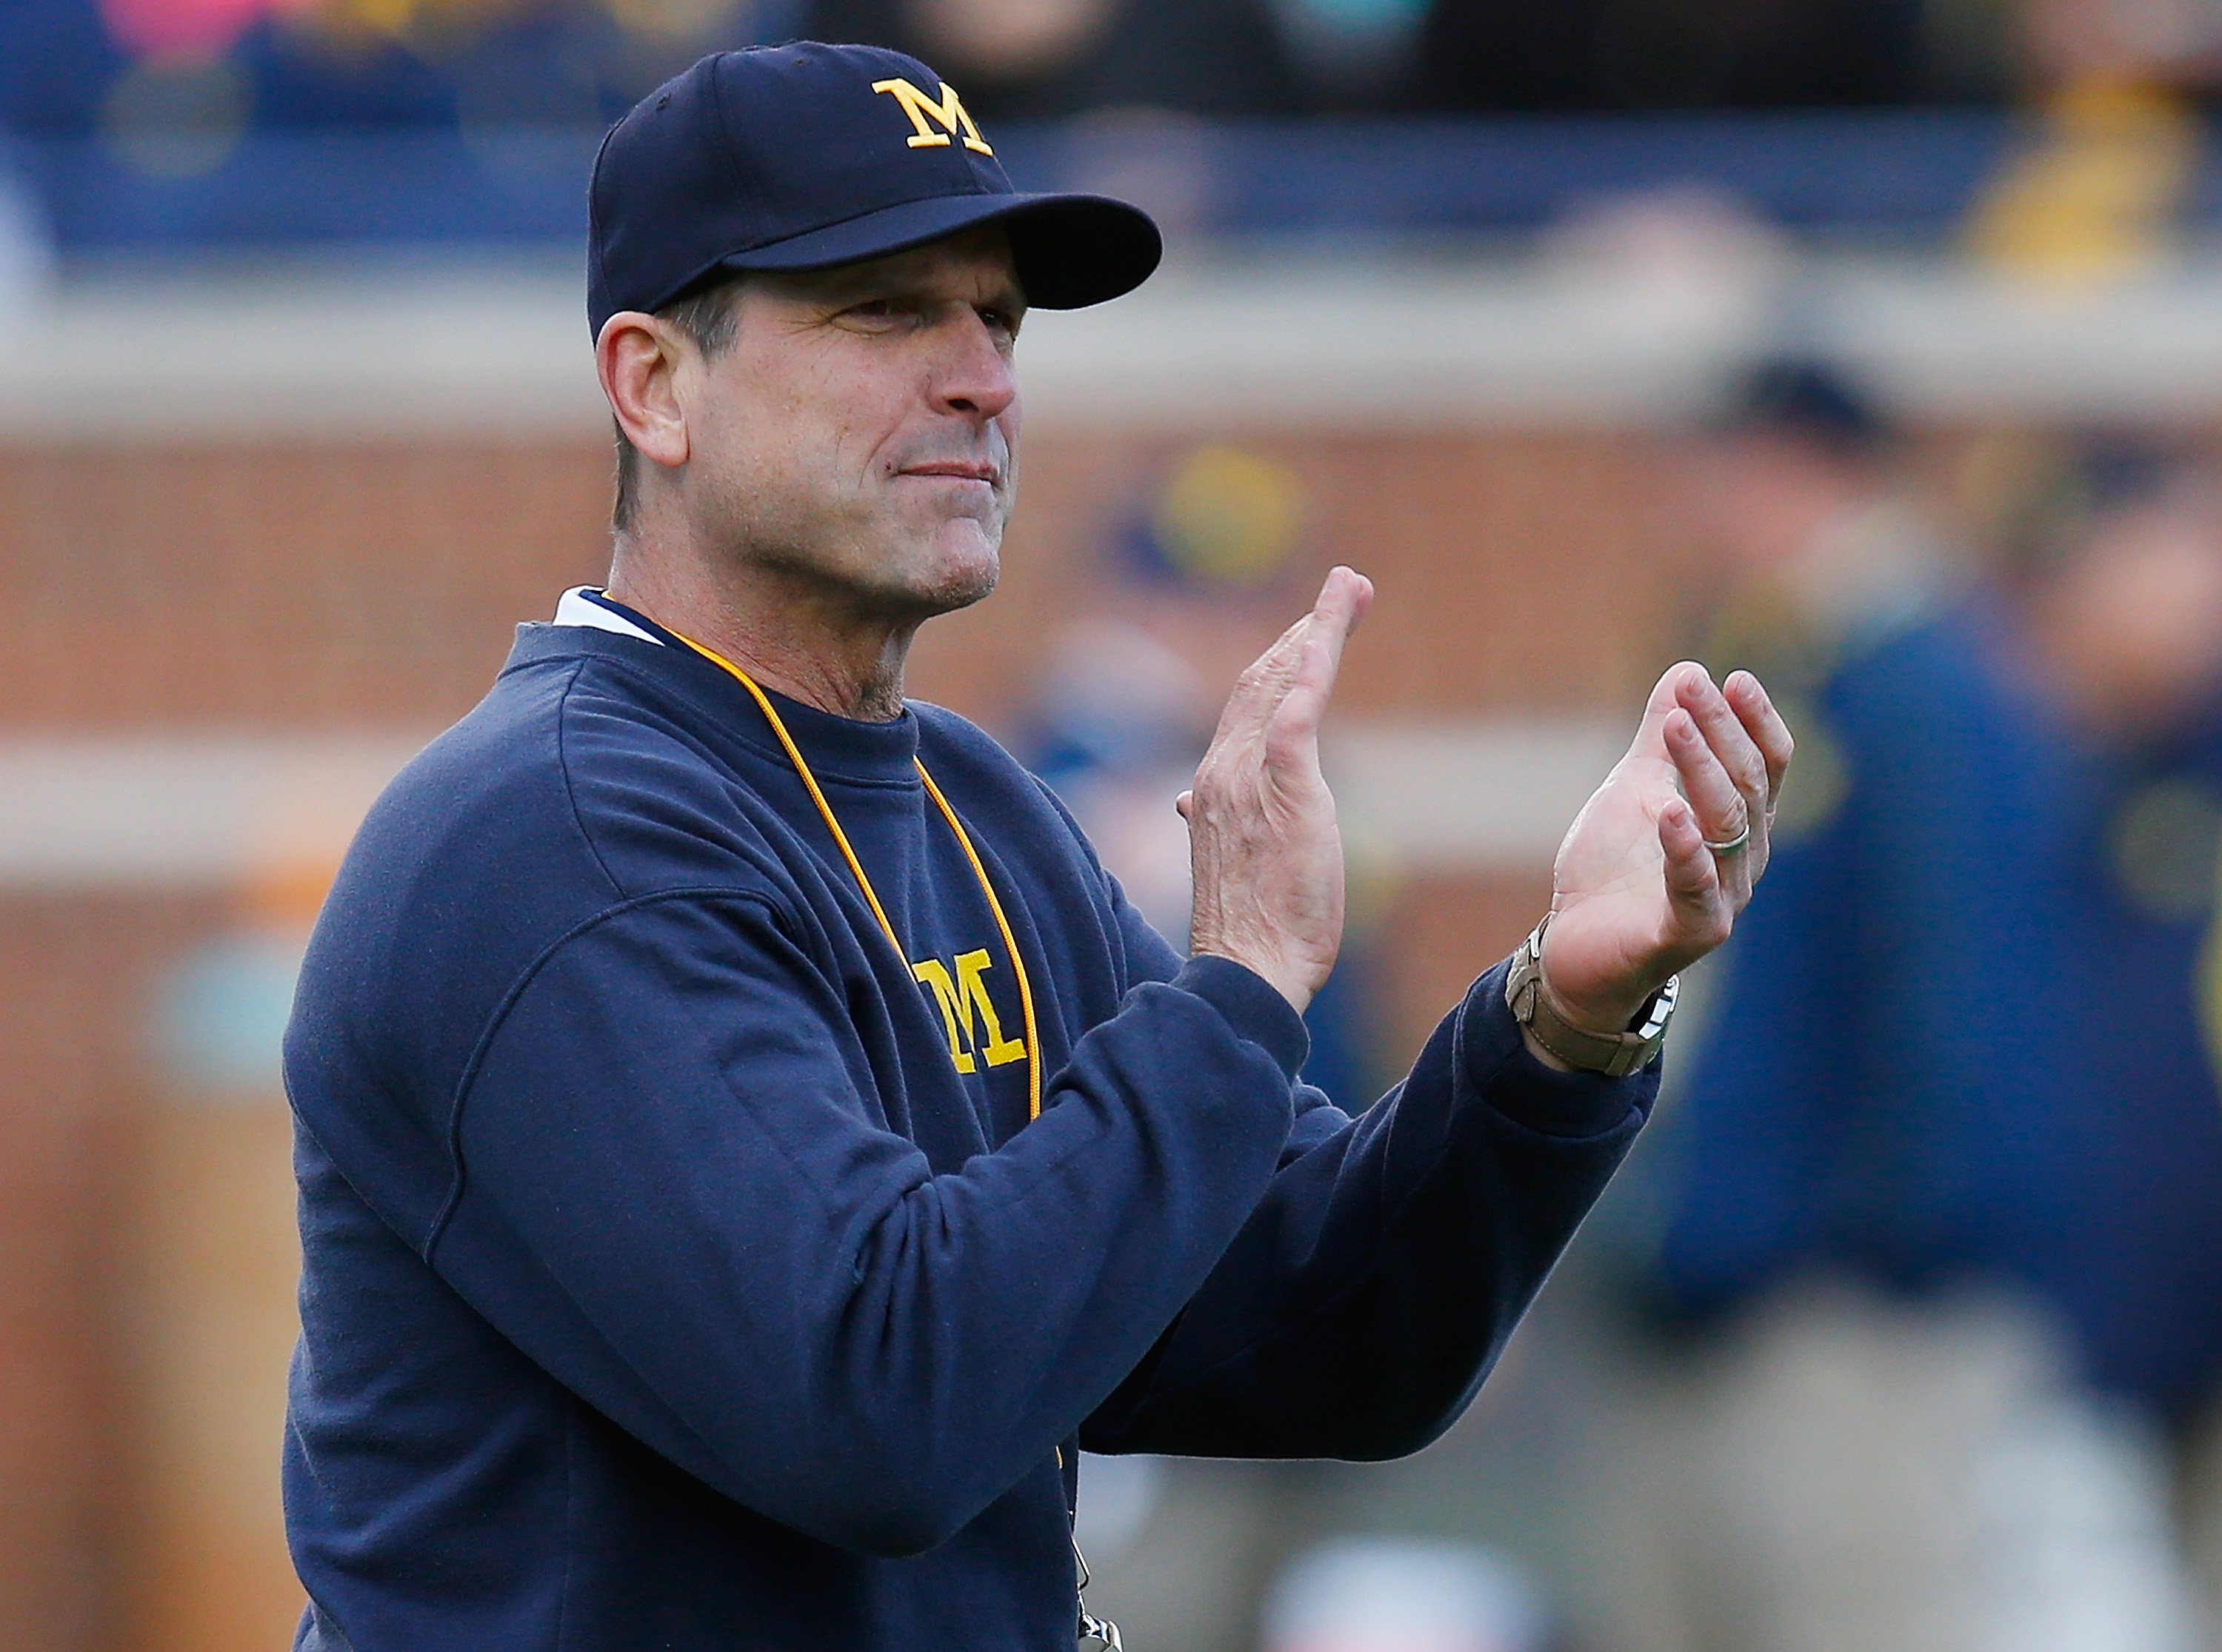 042816-cfb-jim-harbaugh-gallery5